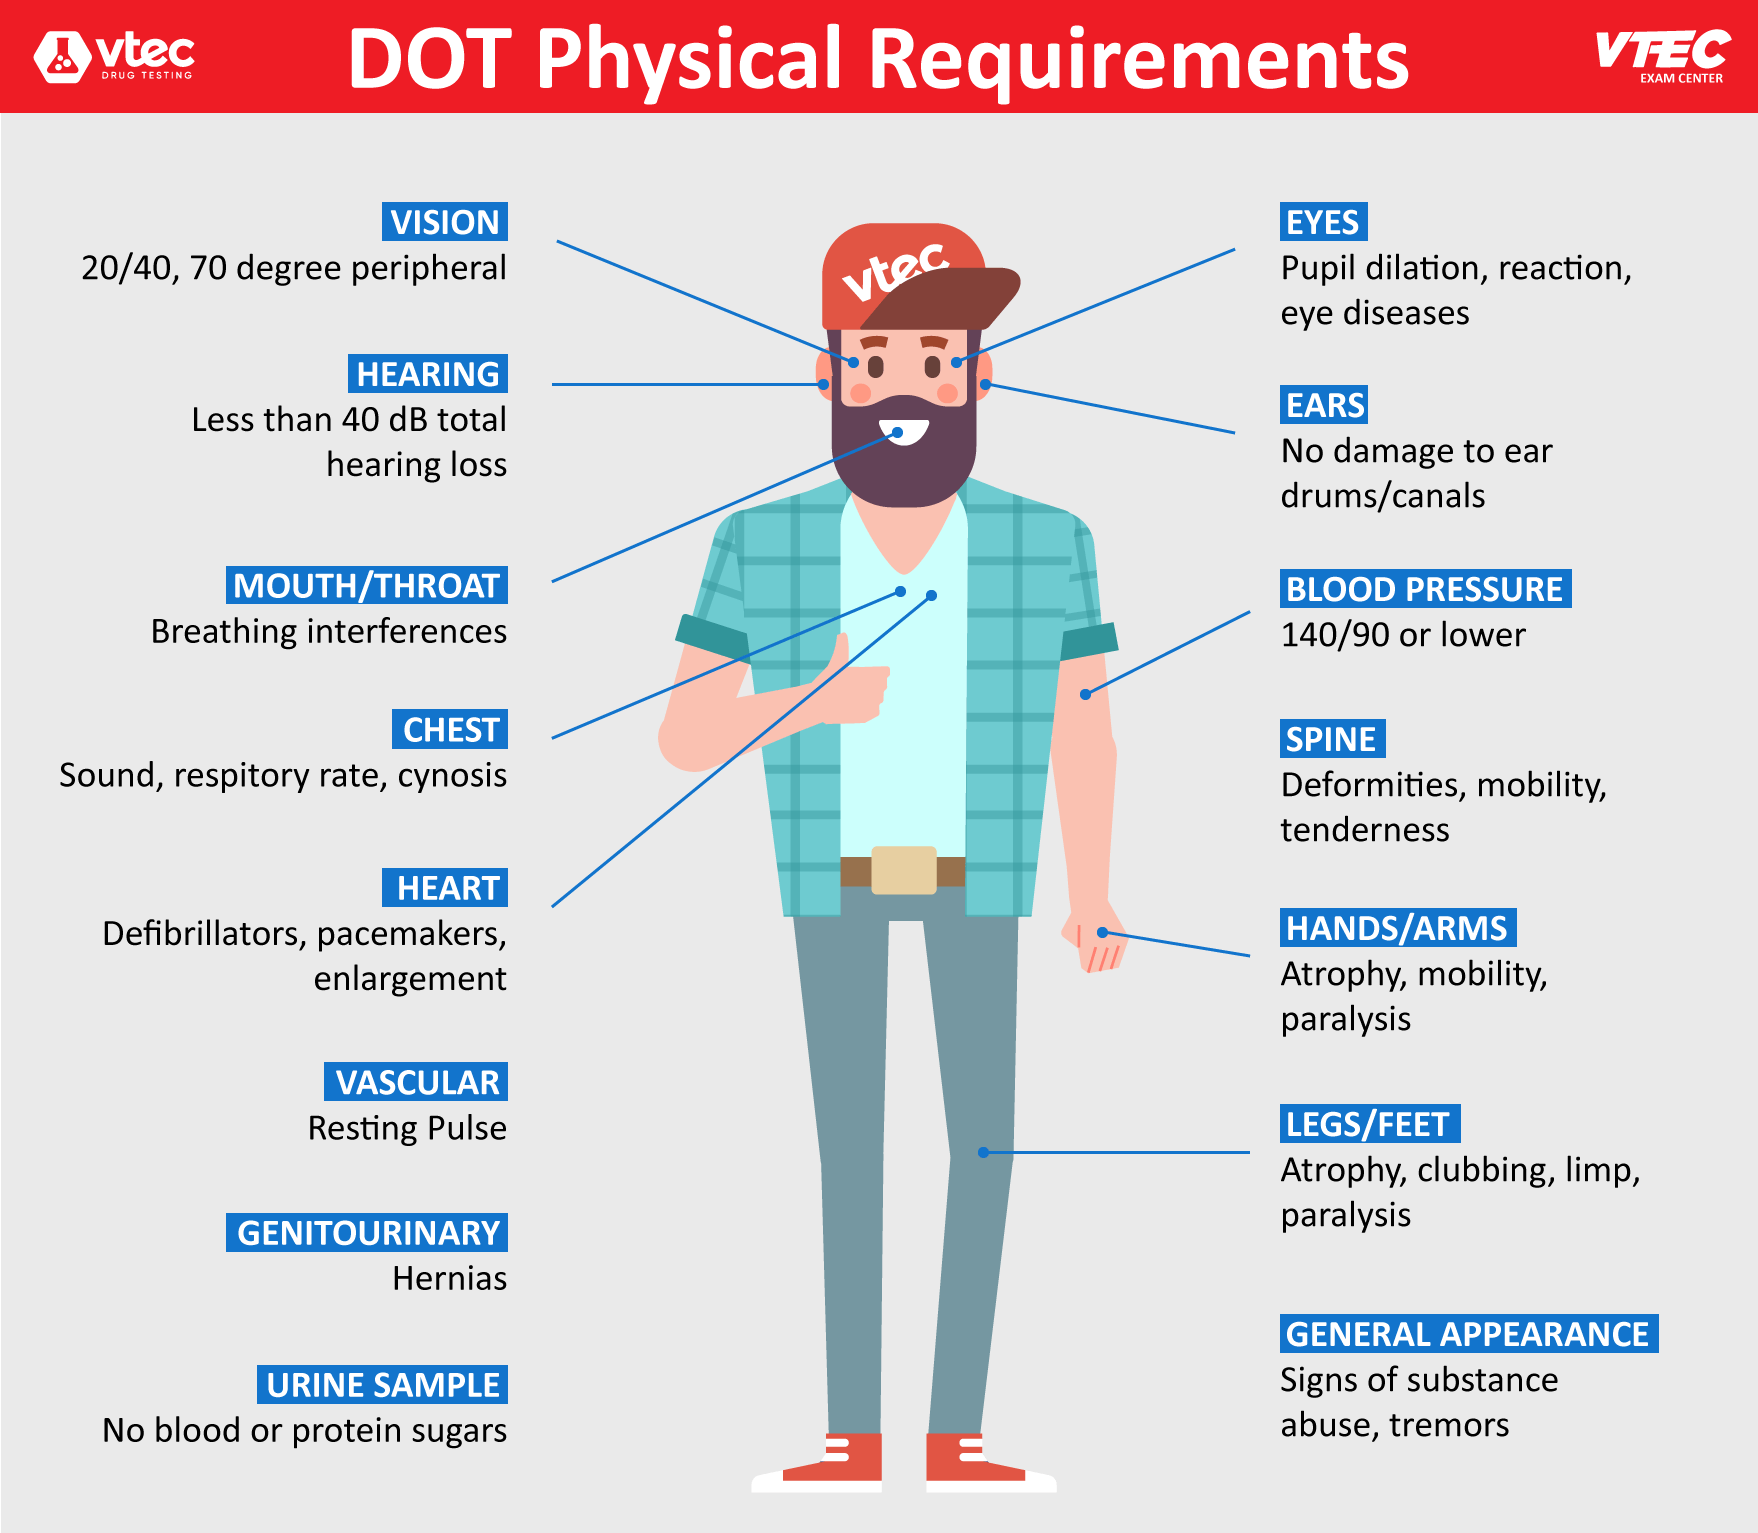 dot physical exam requirements